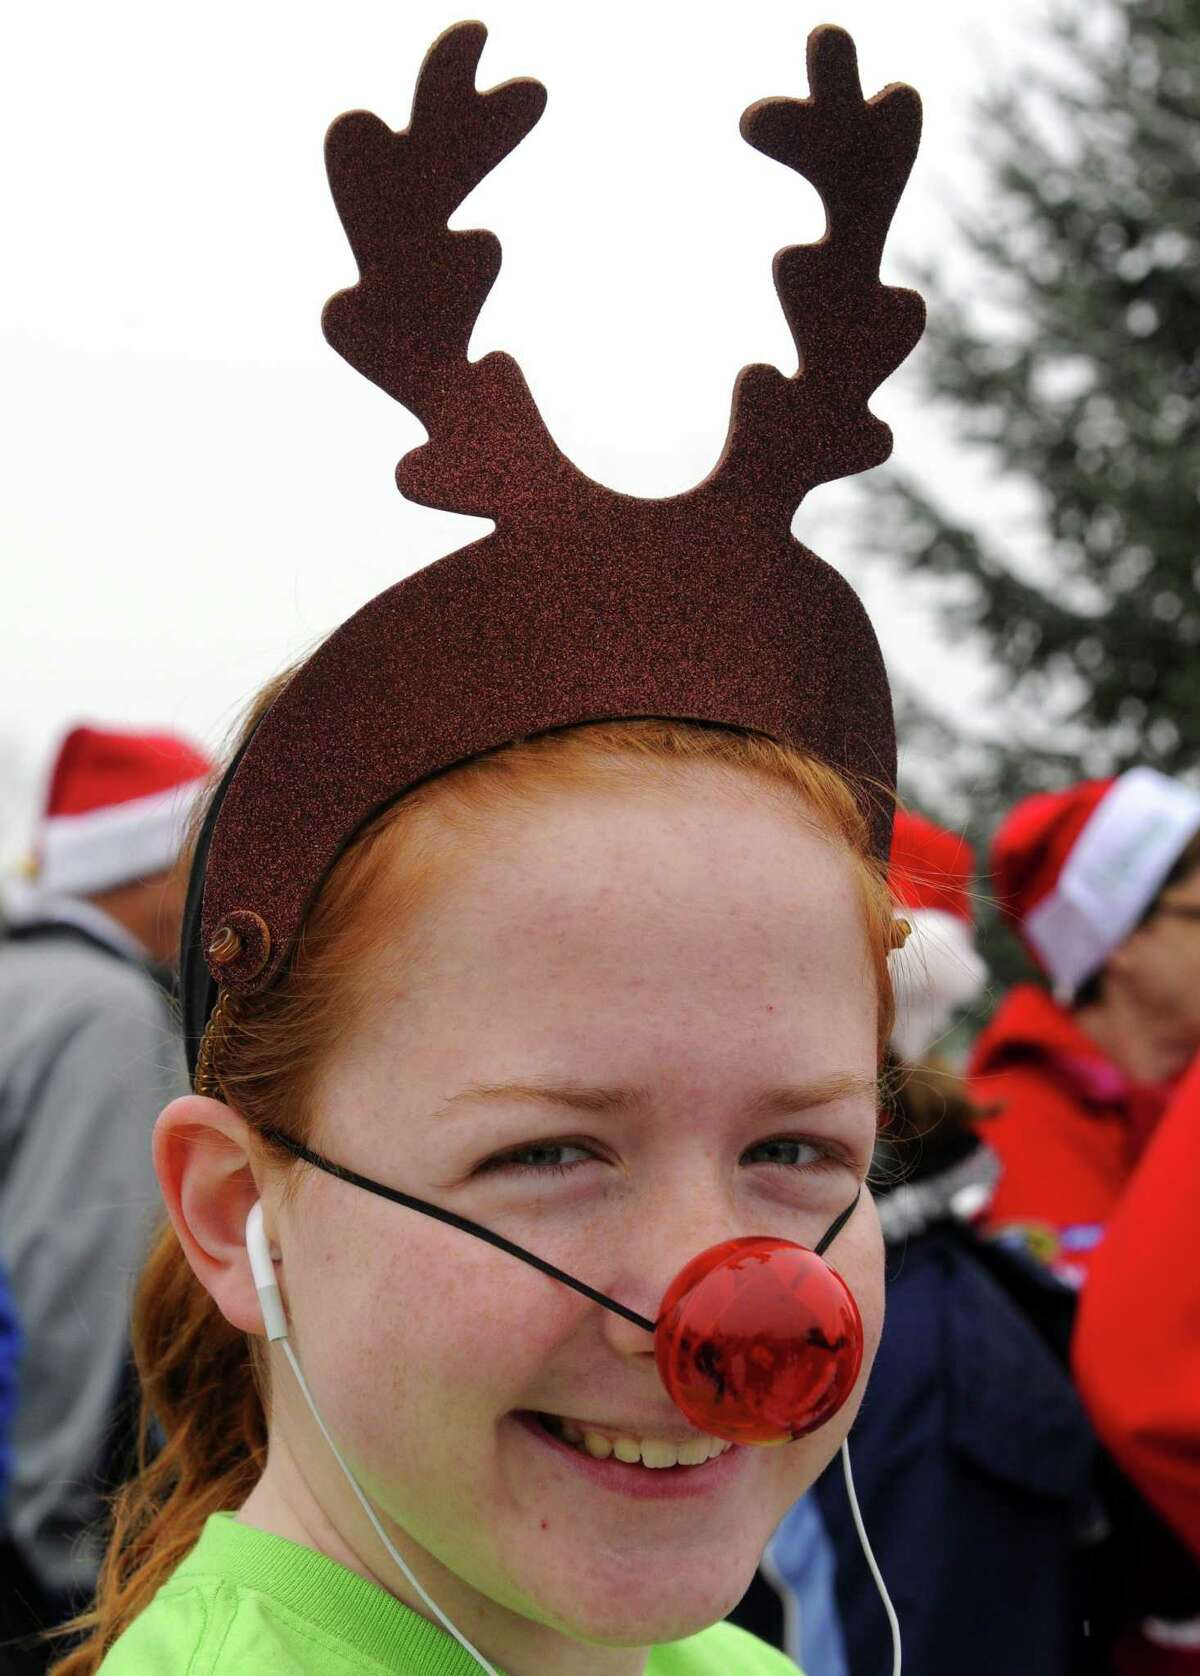 Fifteen-year-old Amanda Guzy of Latham takes part in the 2012 Jingle Bell Run/Walk to benefit the Arthritis Foundation of Northeastern New York at the Crossings in a Colonie, NY Thursday Dec. 1, 2012. (Michael P. Farrell/Times Union)